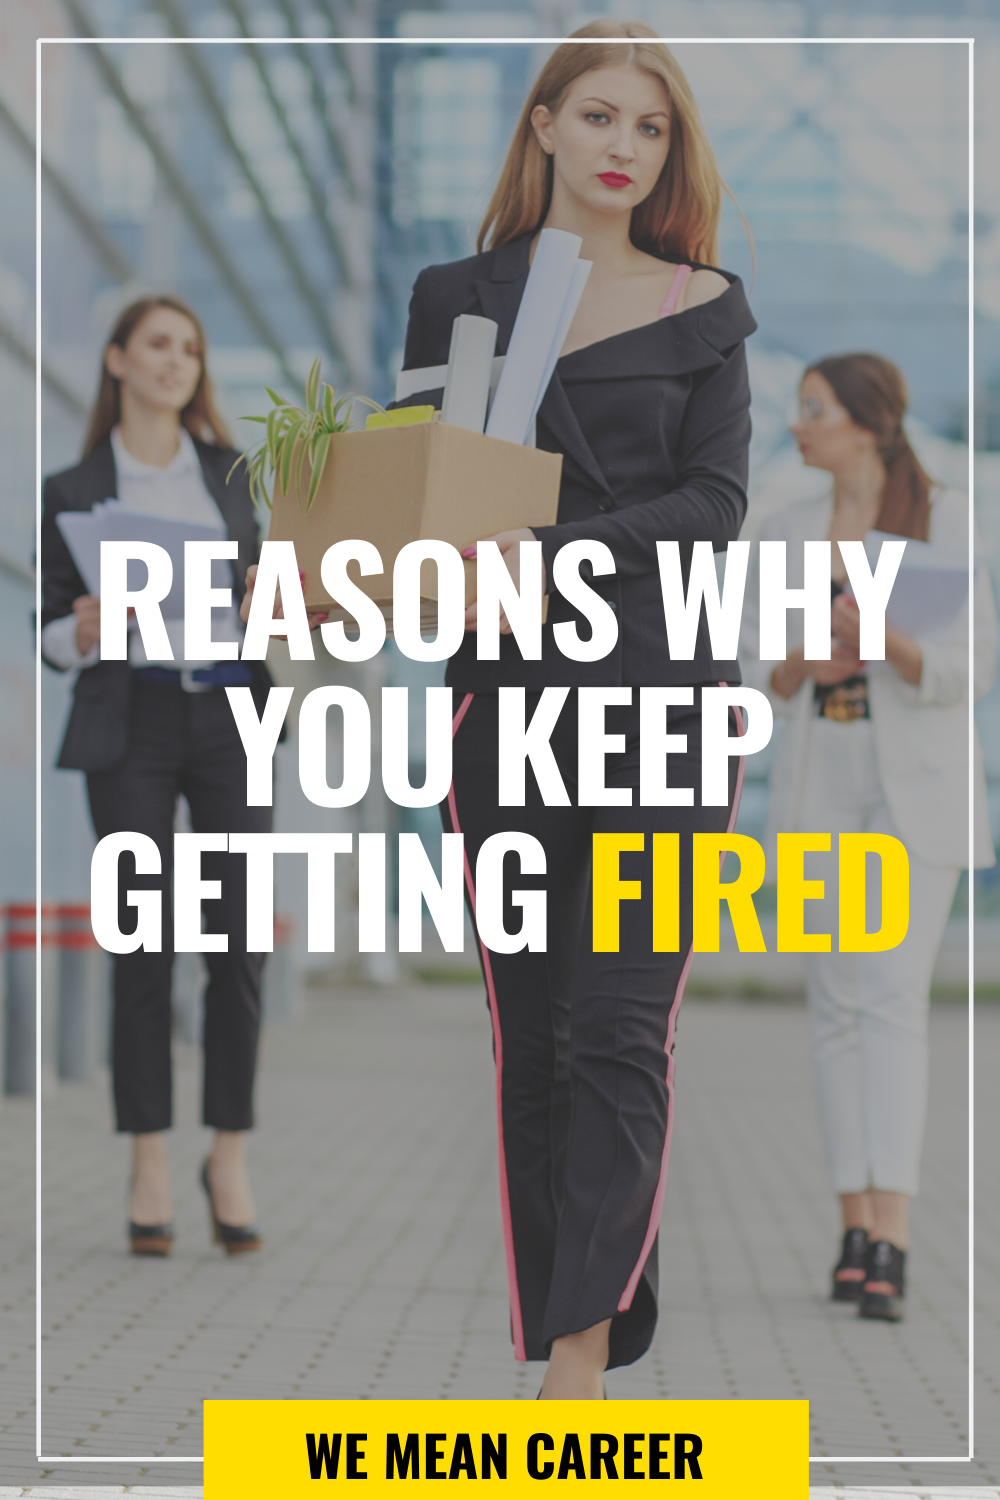 40e8c178e1b4392421431811552cef3b - How To Ask Your Boss If You Are Getting Fired